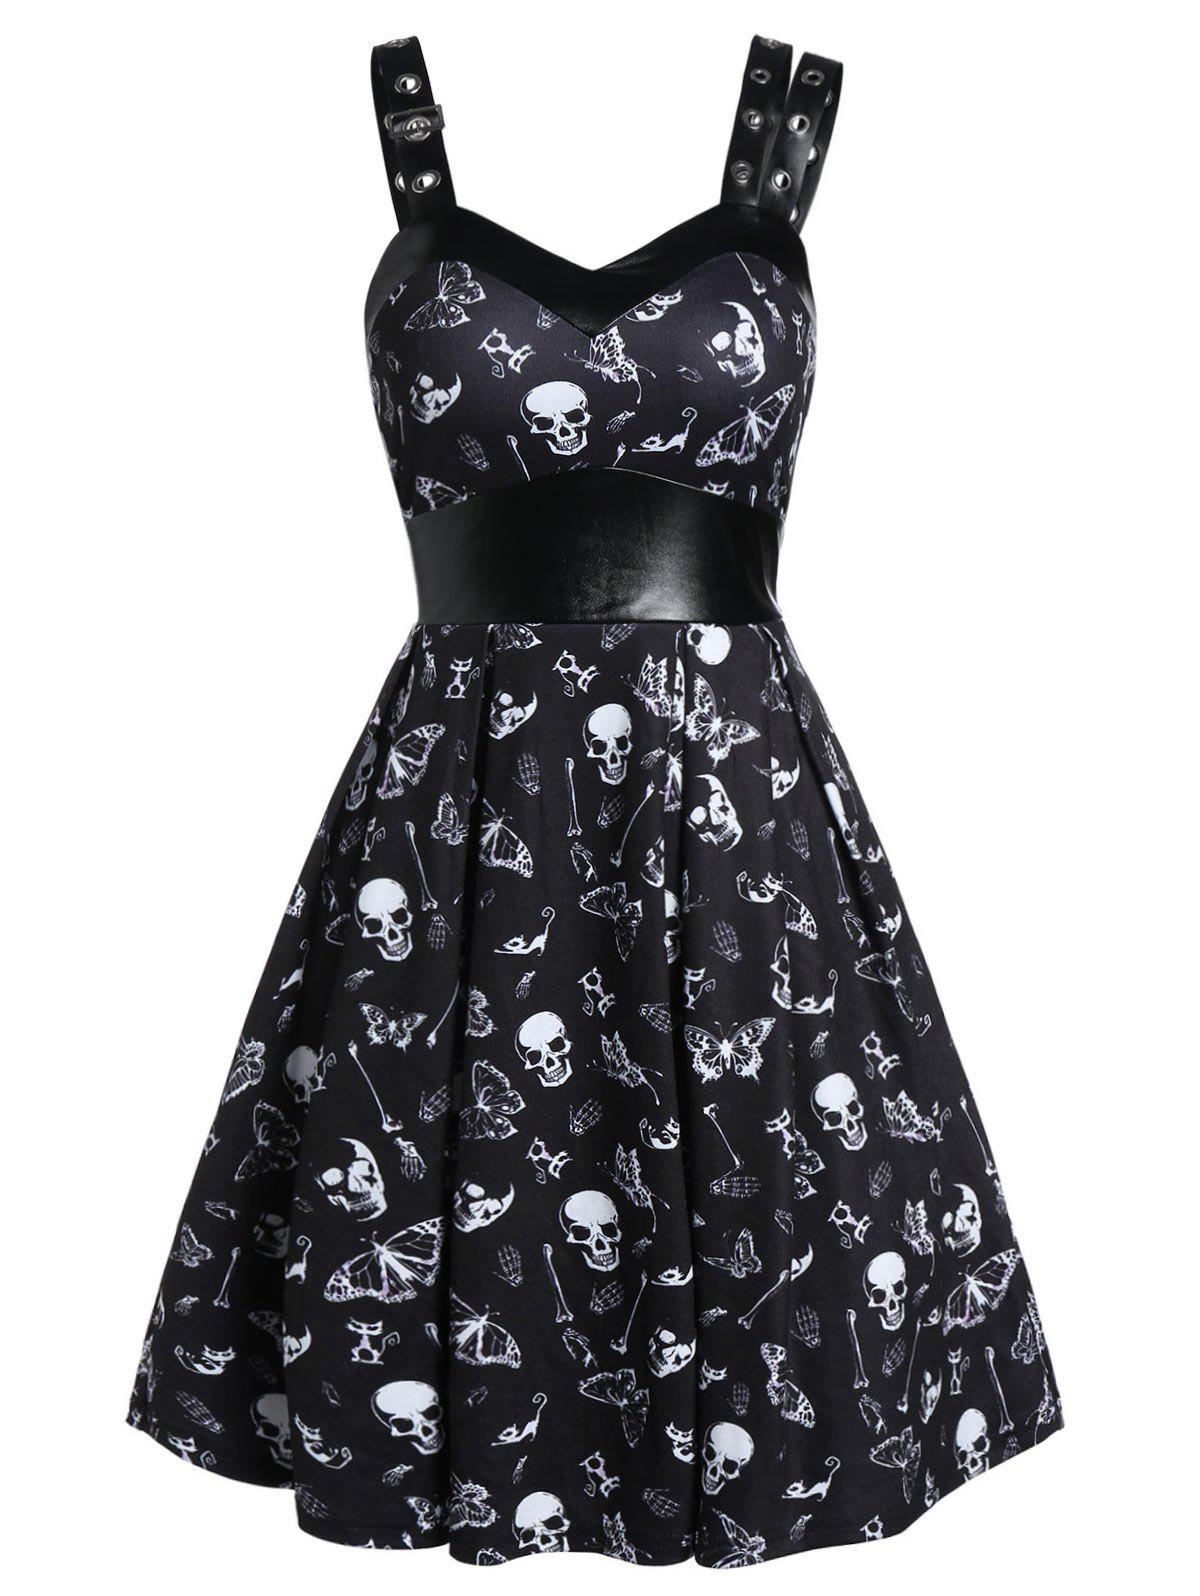 Chic Skull Print High Waist Fit And Flare Dress